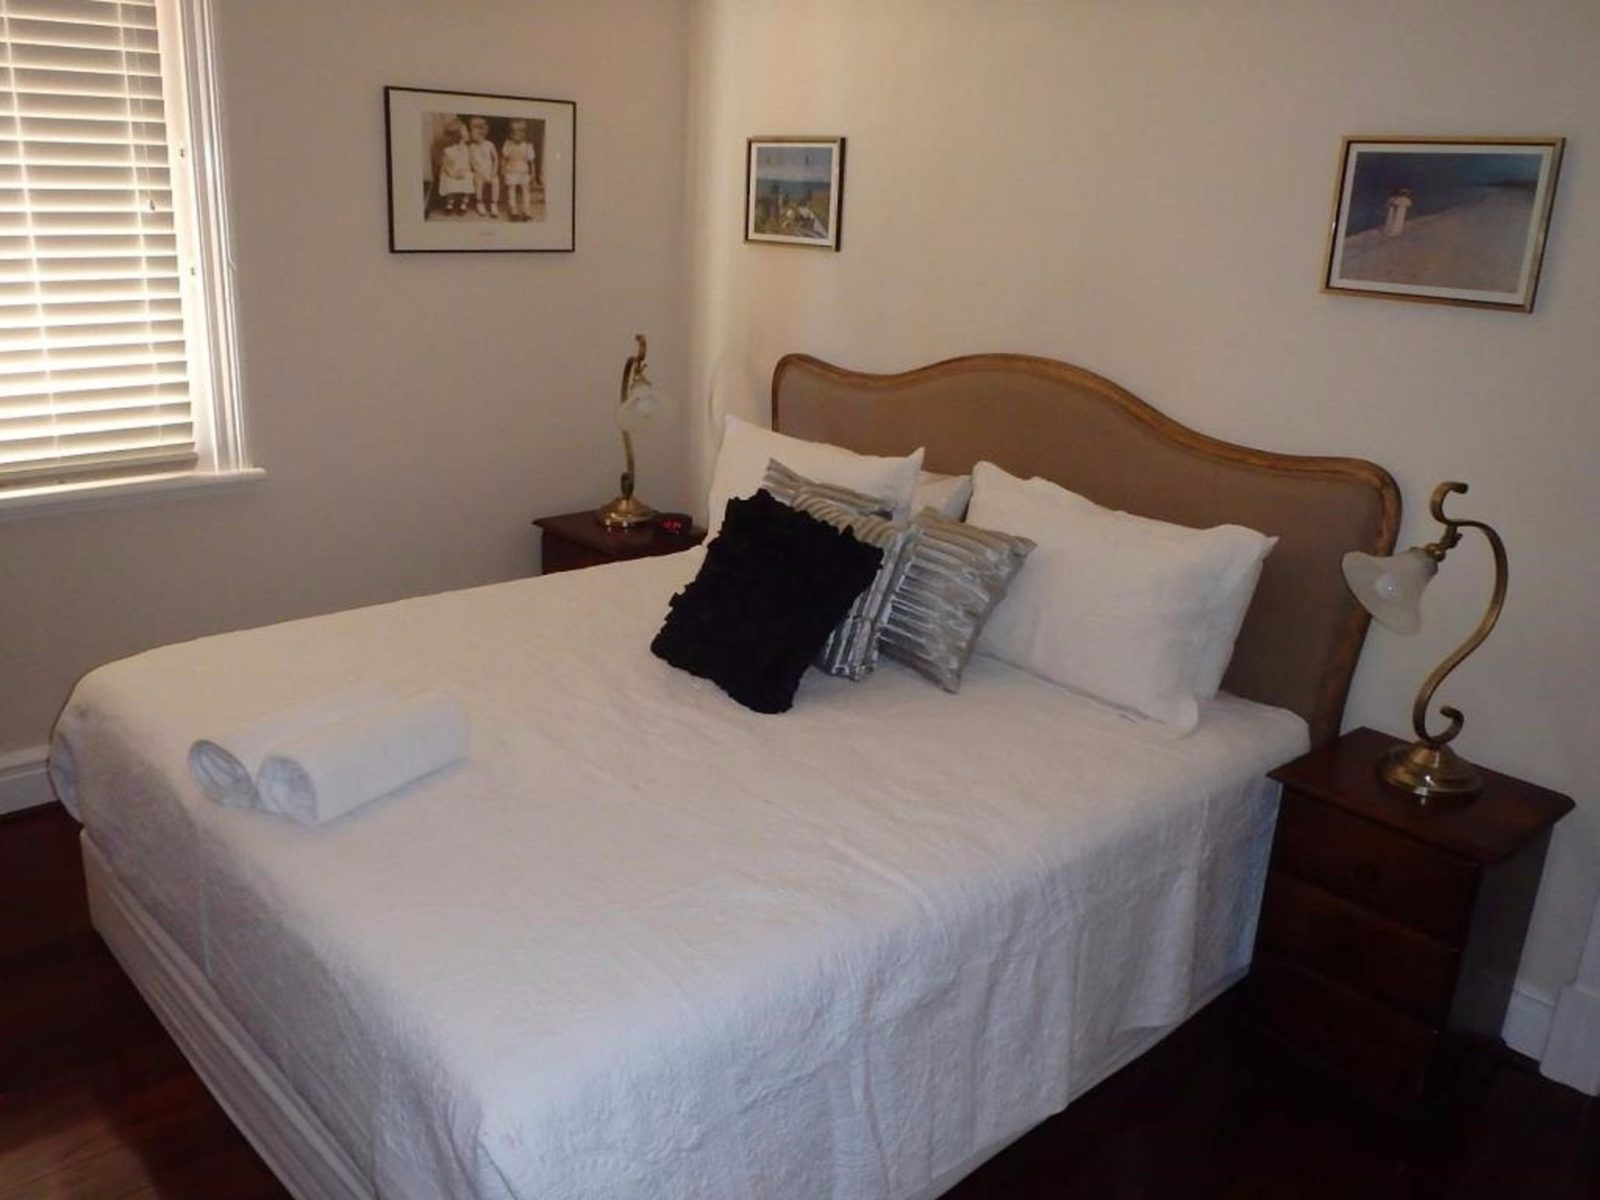 Fremantle Bed and Breakfast, Fremantle, Western Australia